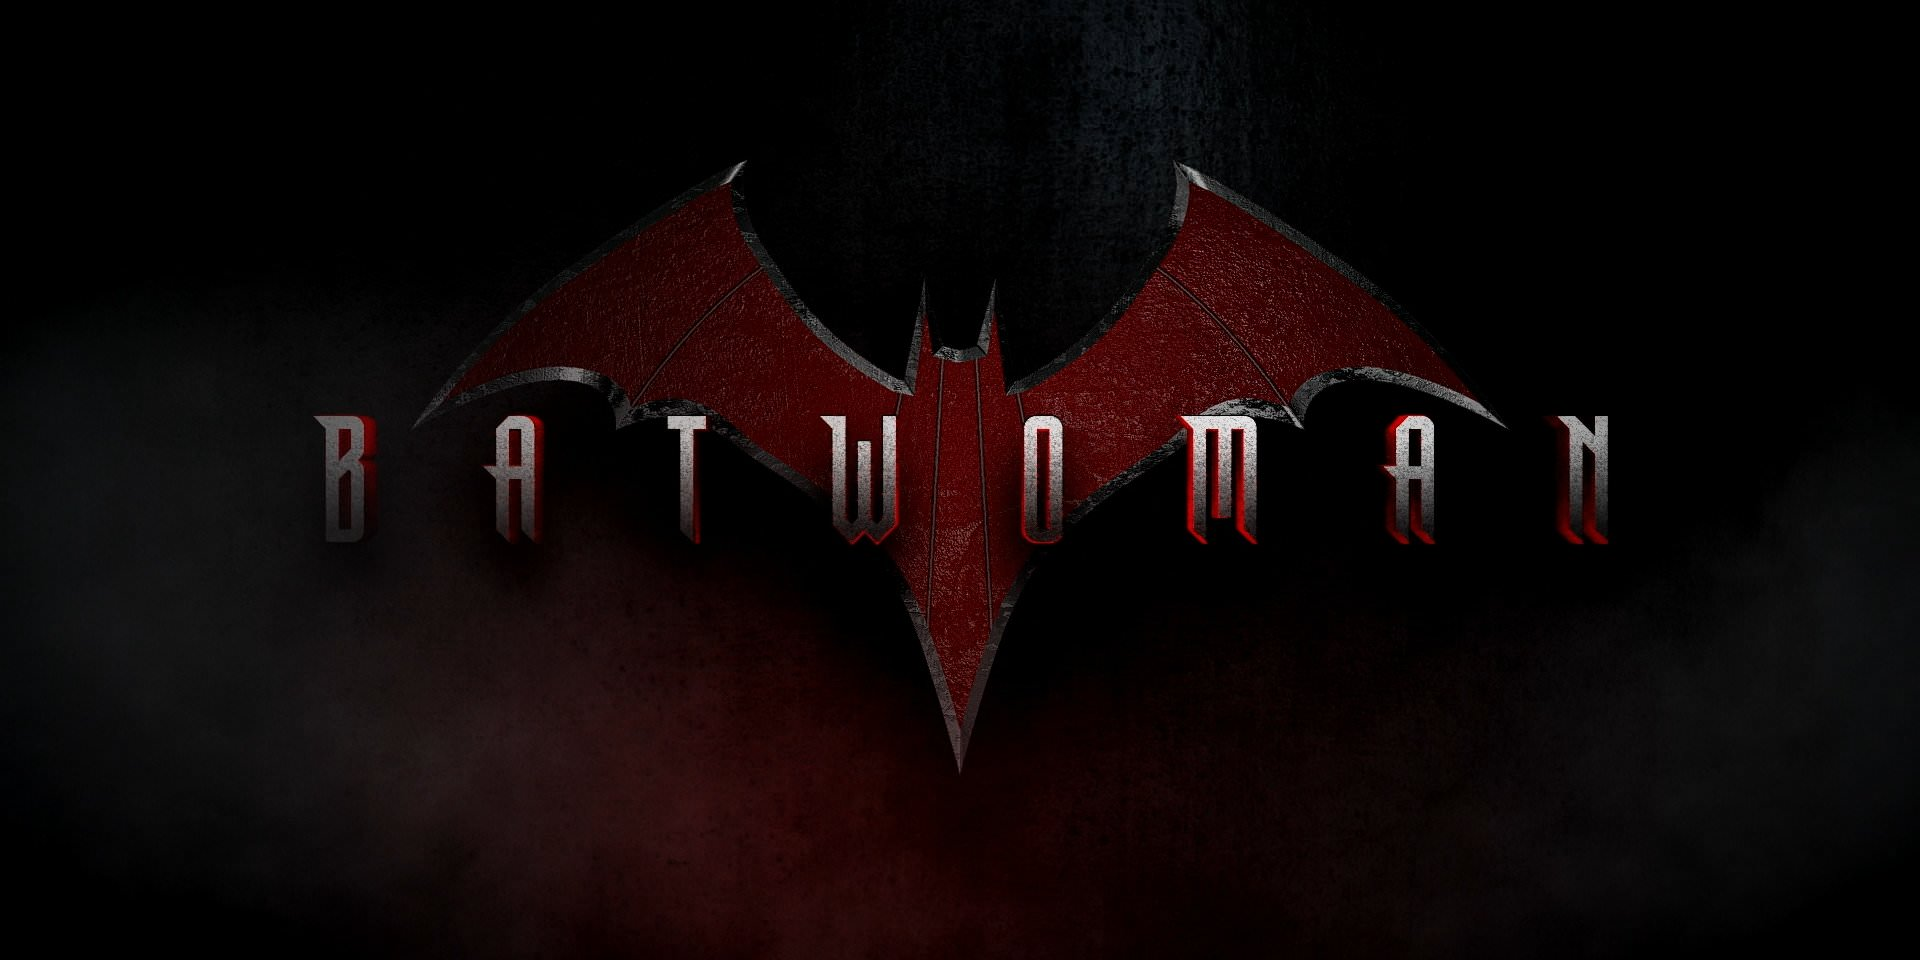 Batwoman (TV Series) Episode: Pilot